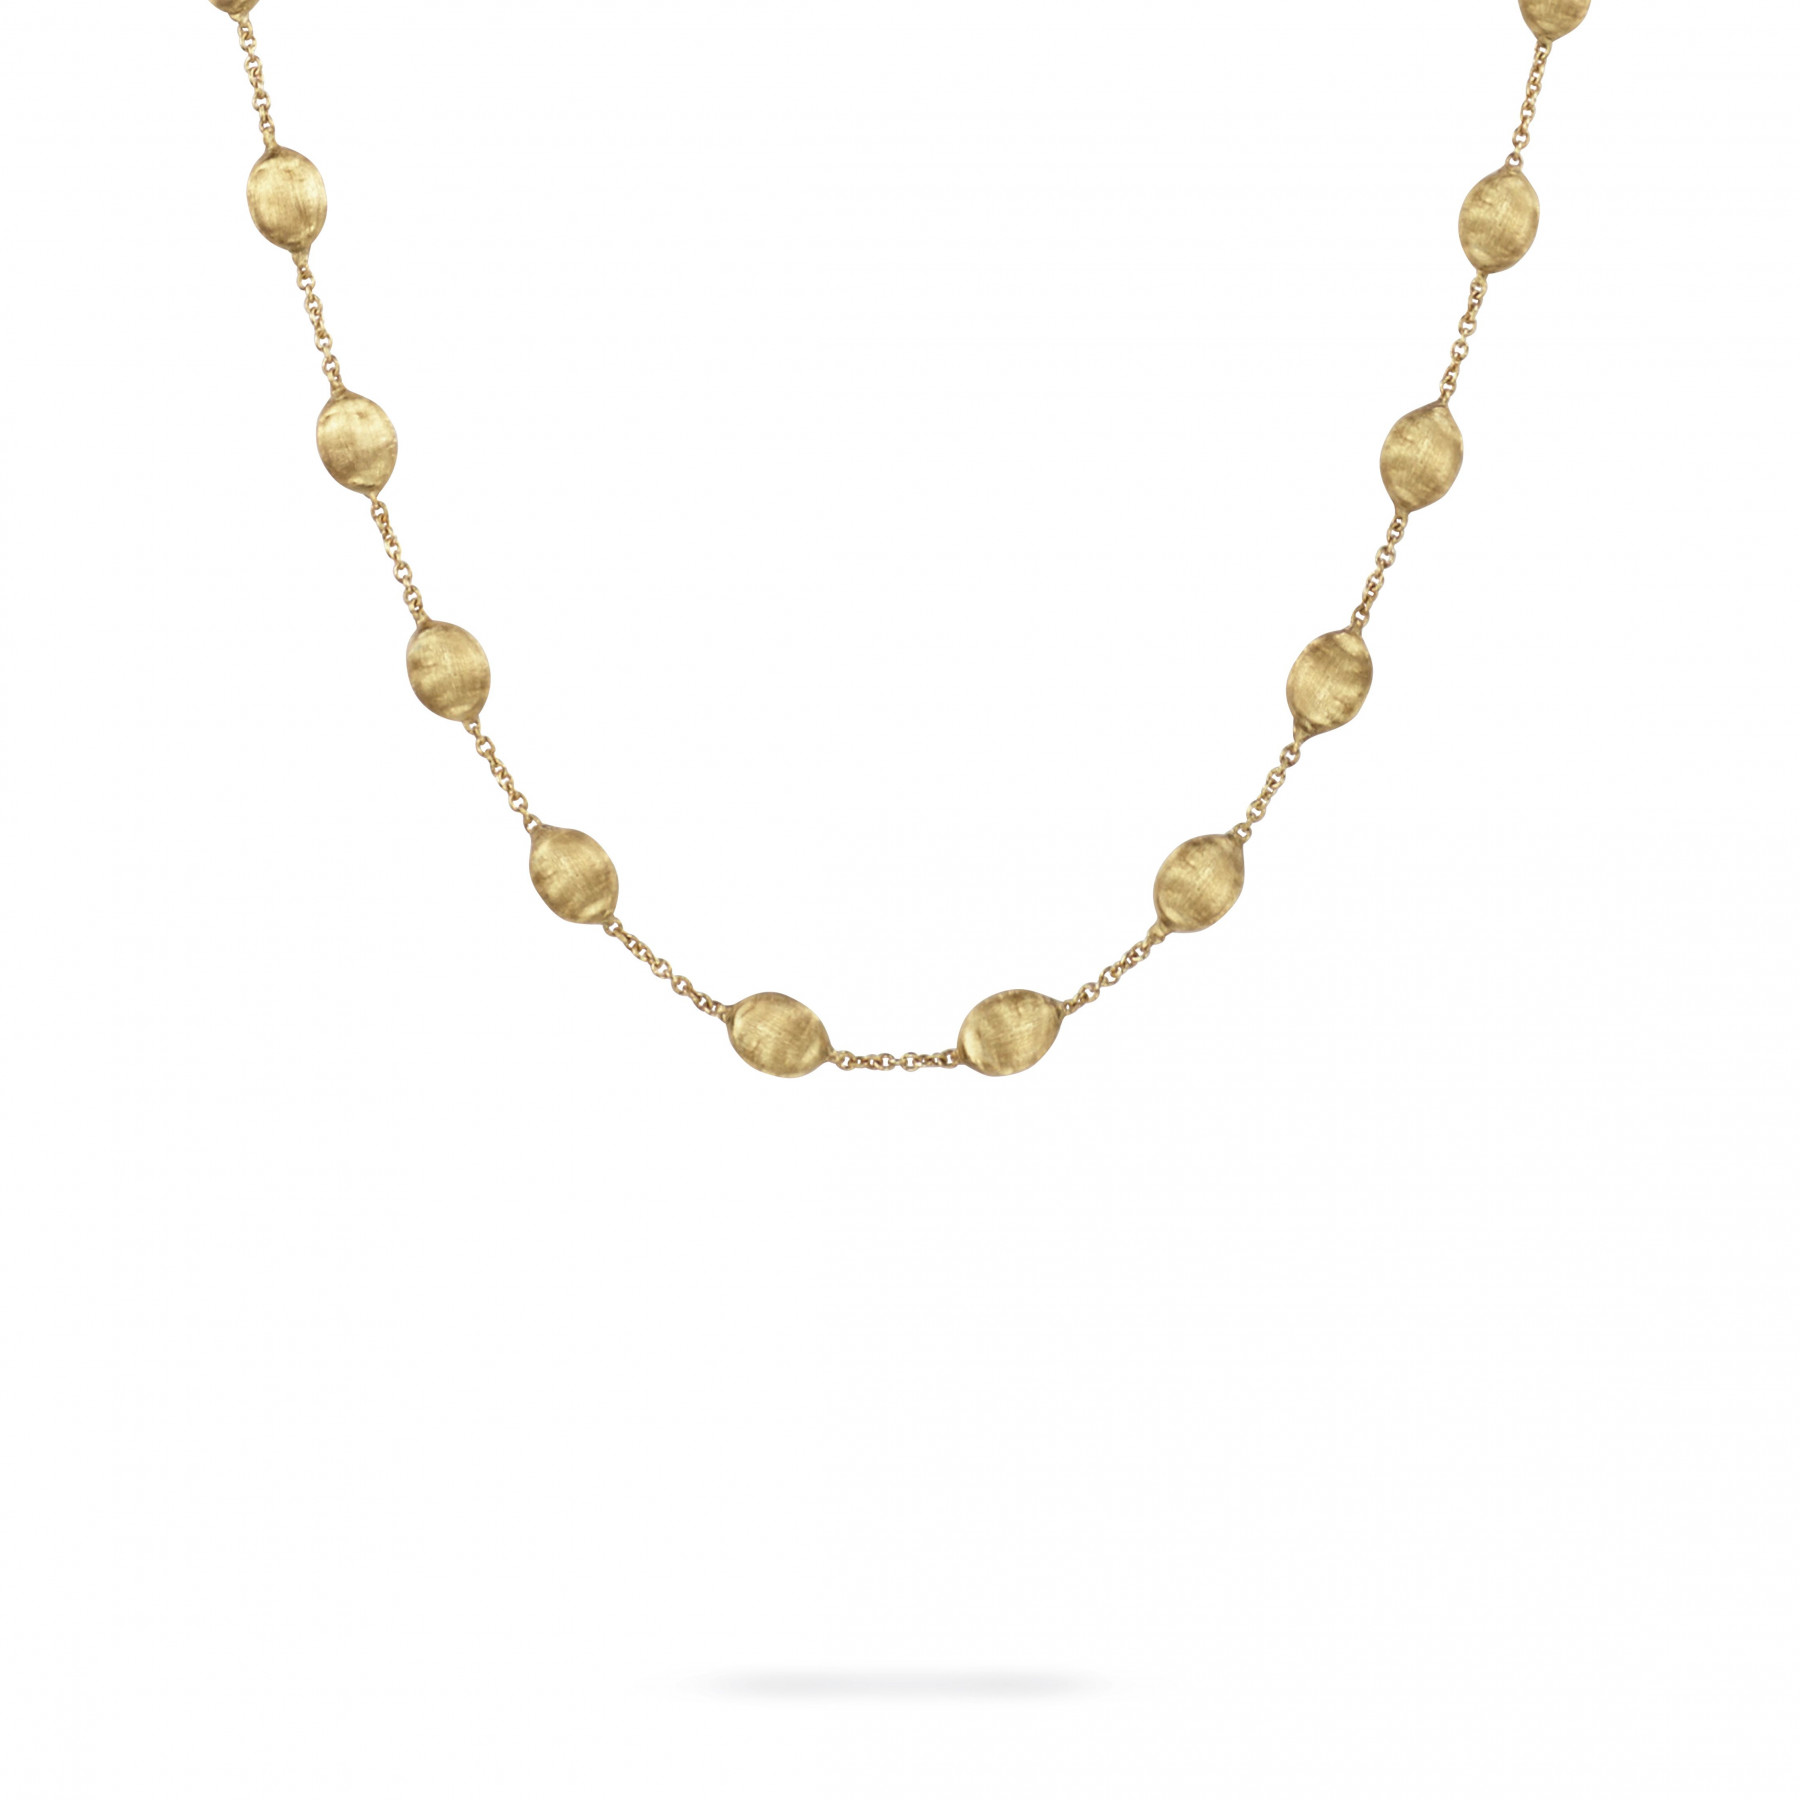 Marco Bicego Sivilgia 18kt Yellow Gold Necklace 16""